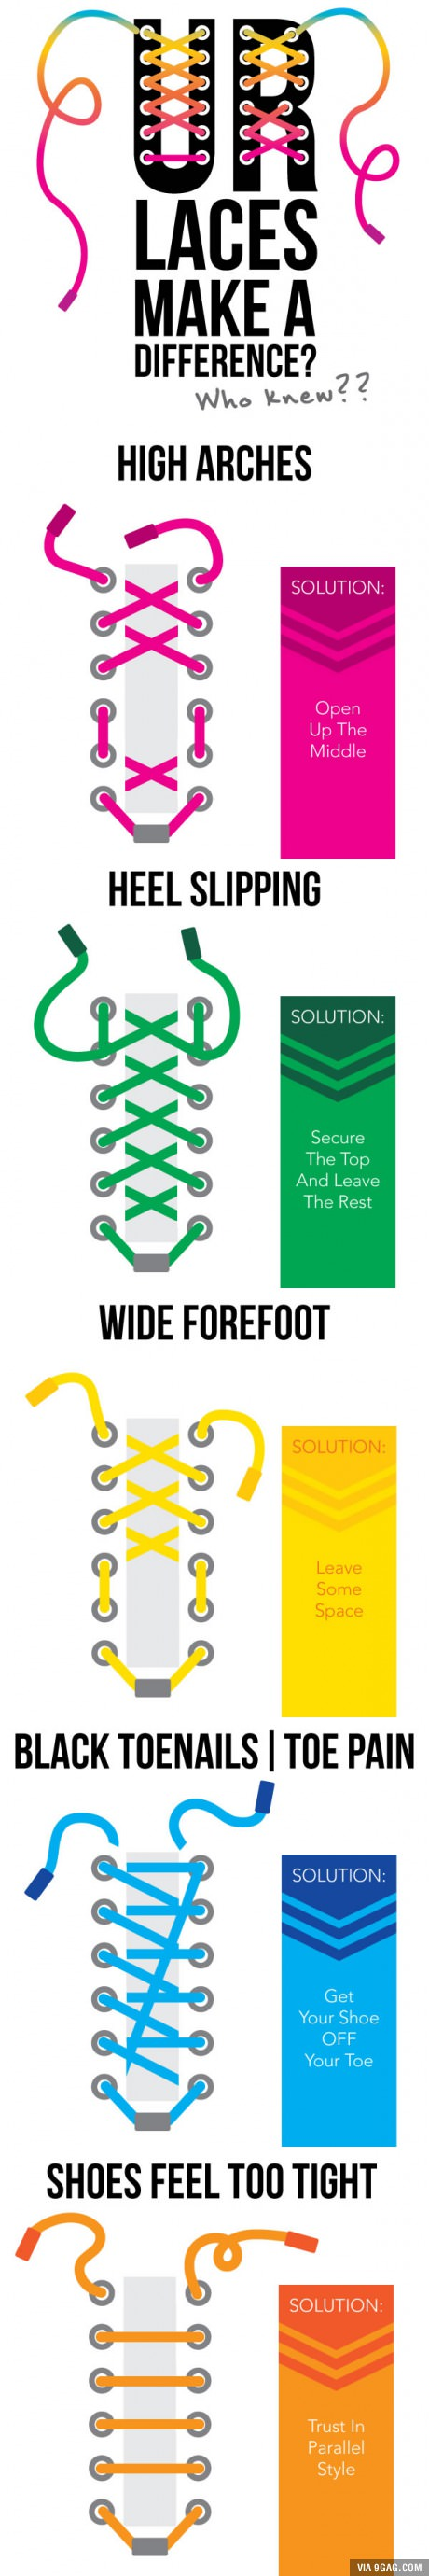 Guide to Lacing Shoes